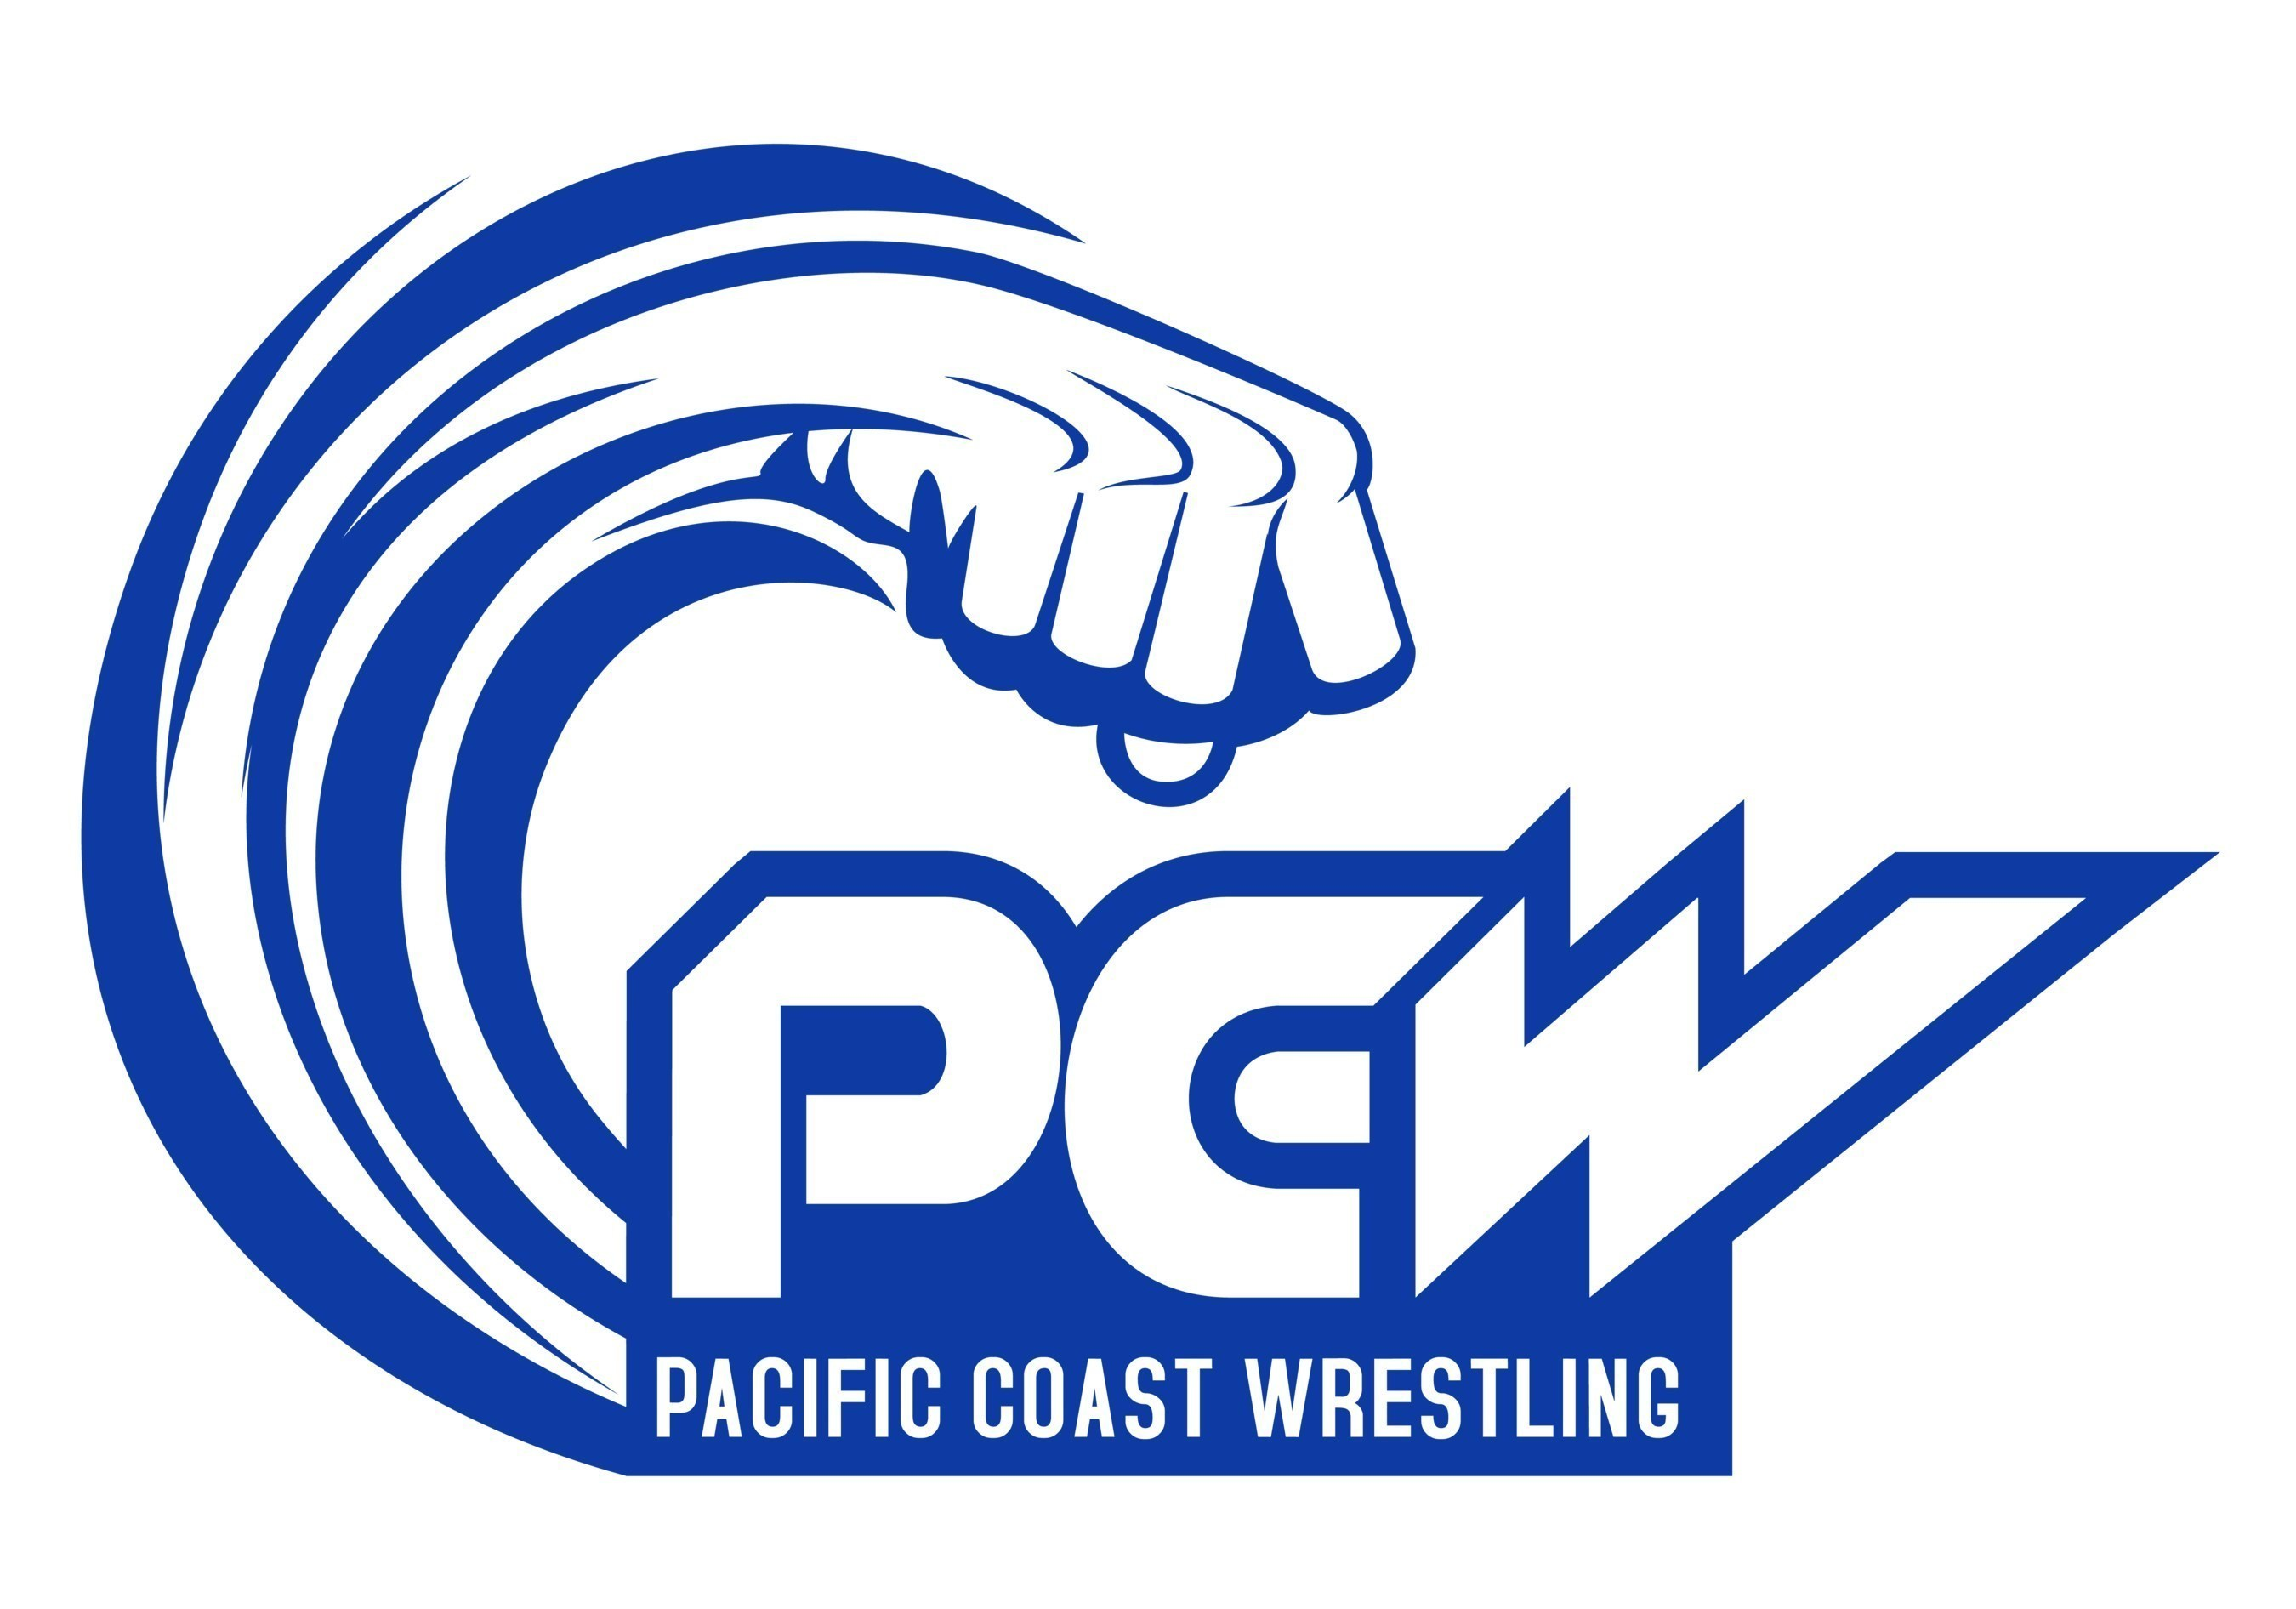 Pacific Coast Wrestling (PCW) is the brainchild of former Pro-Pain Pro Wrestling (3PW) promoter, Mike Hawes, ...